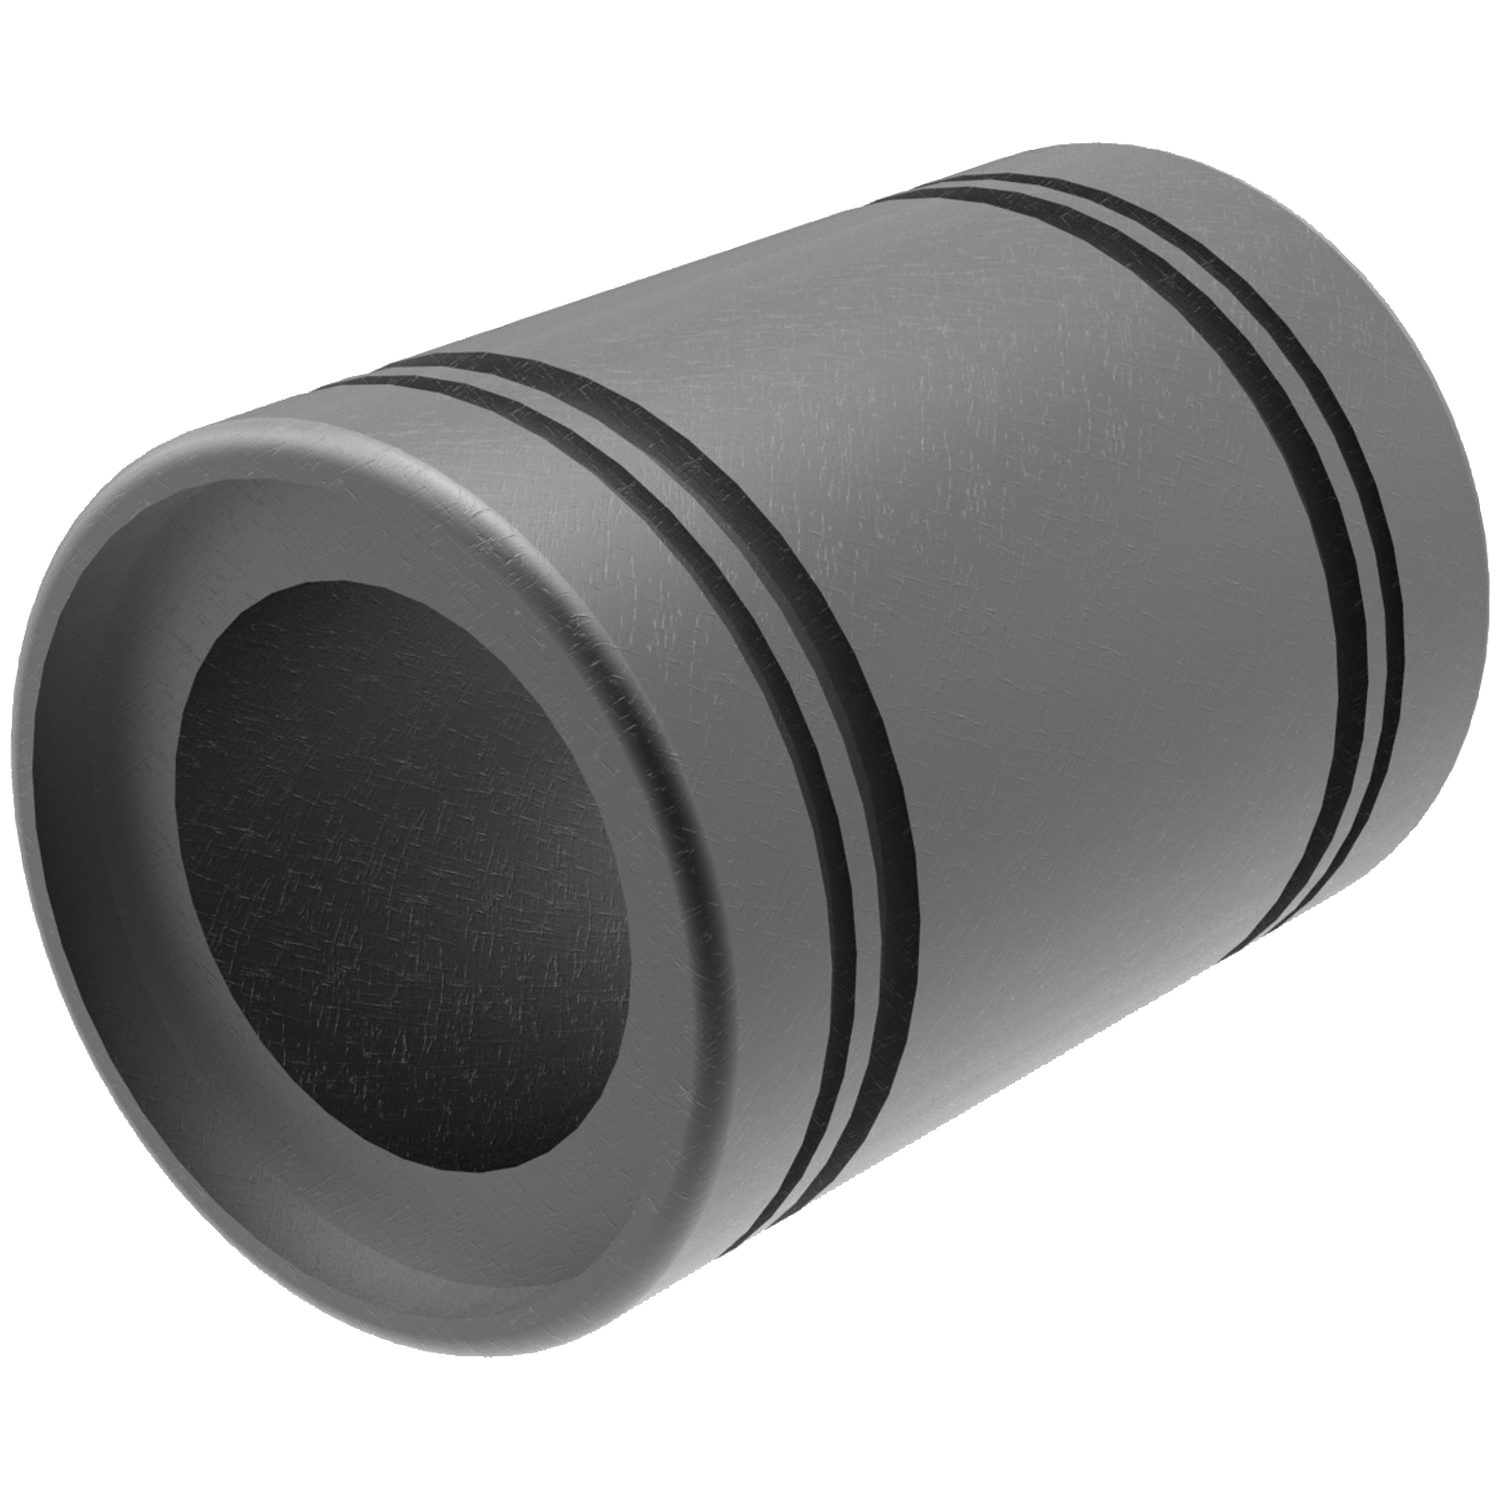 Ceramic Closed Linear Bearings Automotion Components also stock a wide range of Ceramic Linear Bearings.